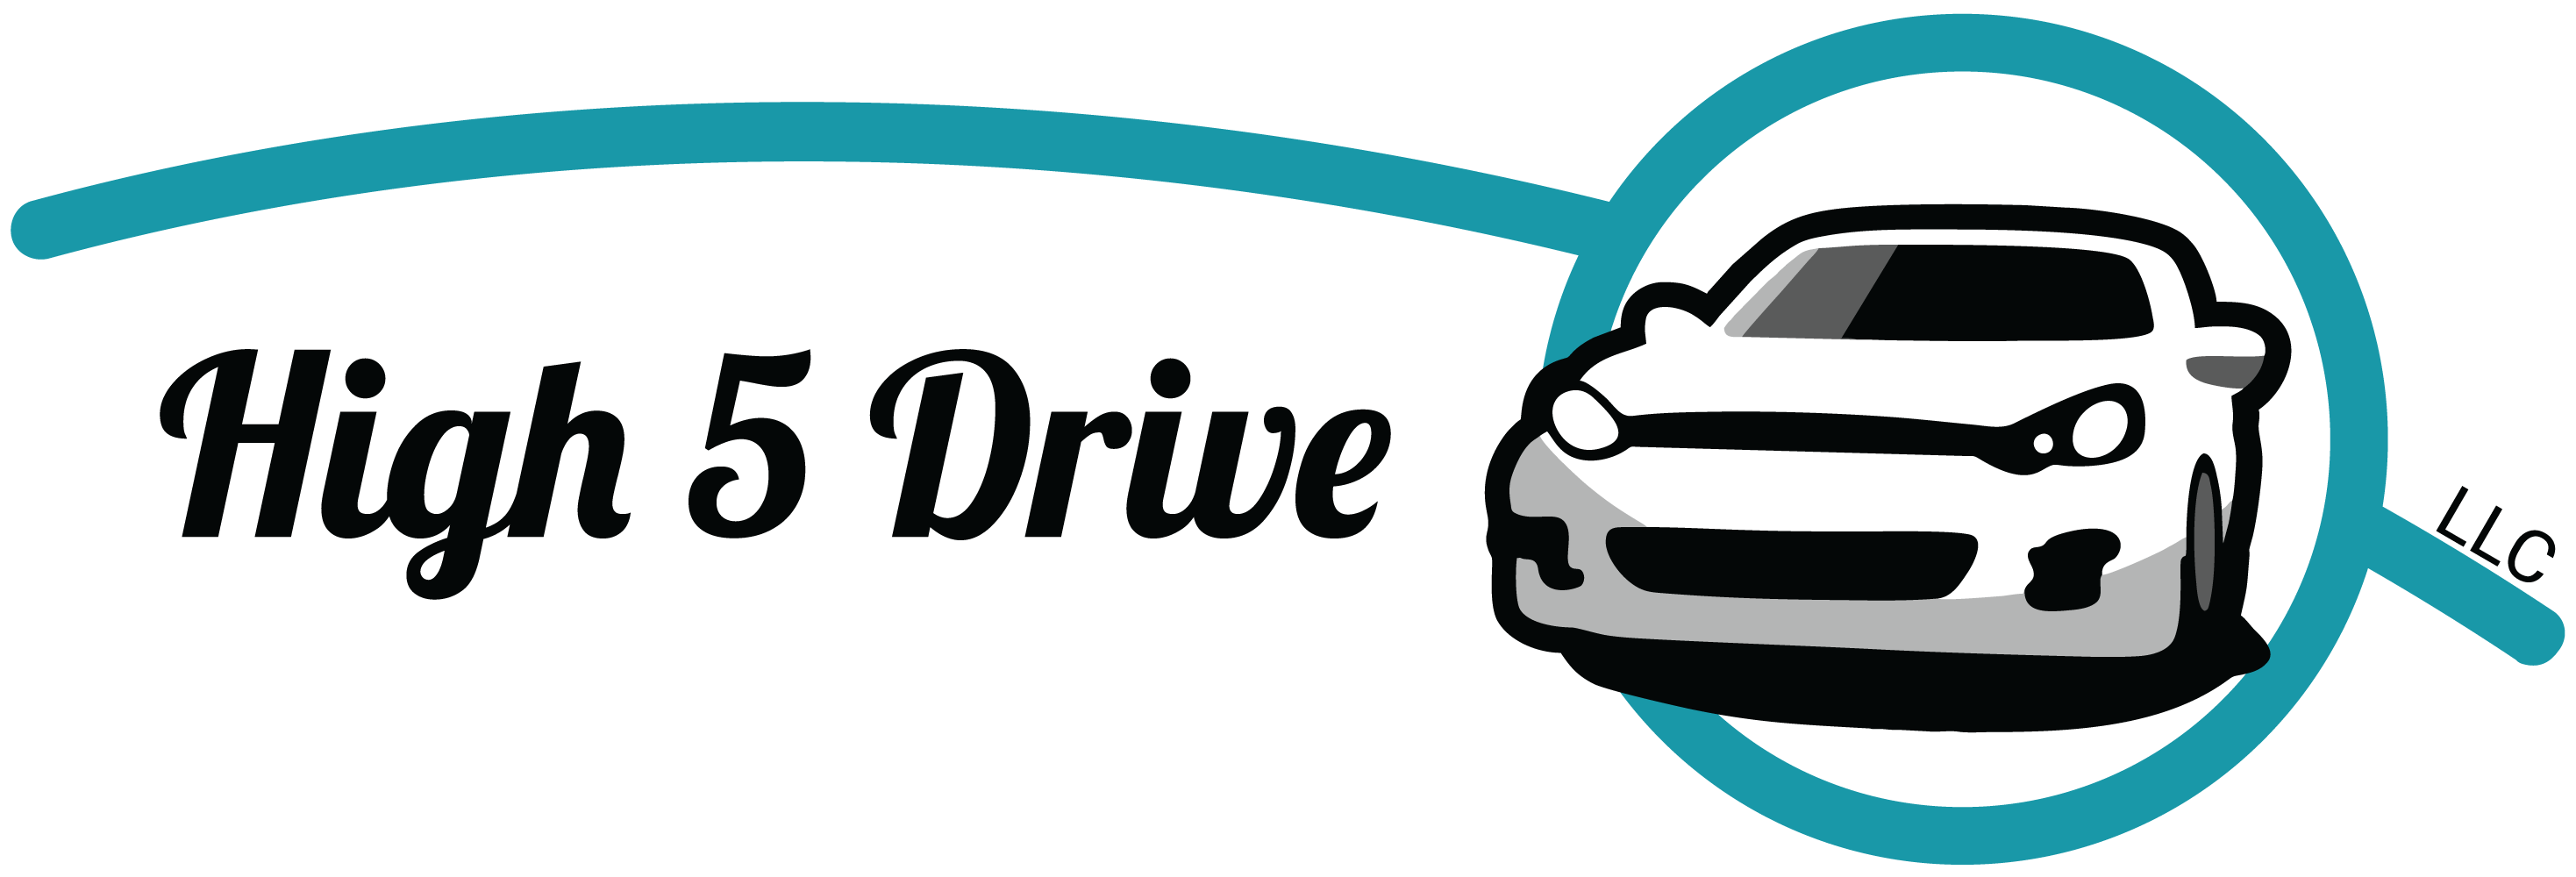 image-803083-Logo-High5drive-medium.png